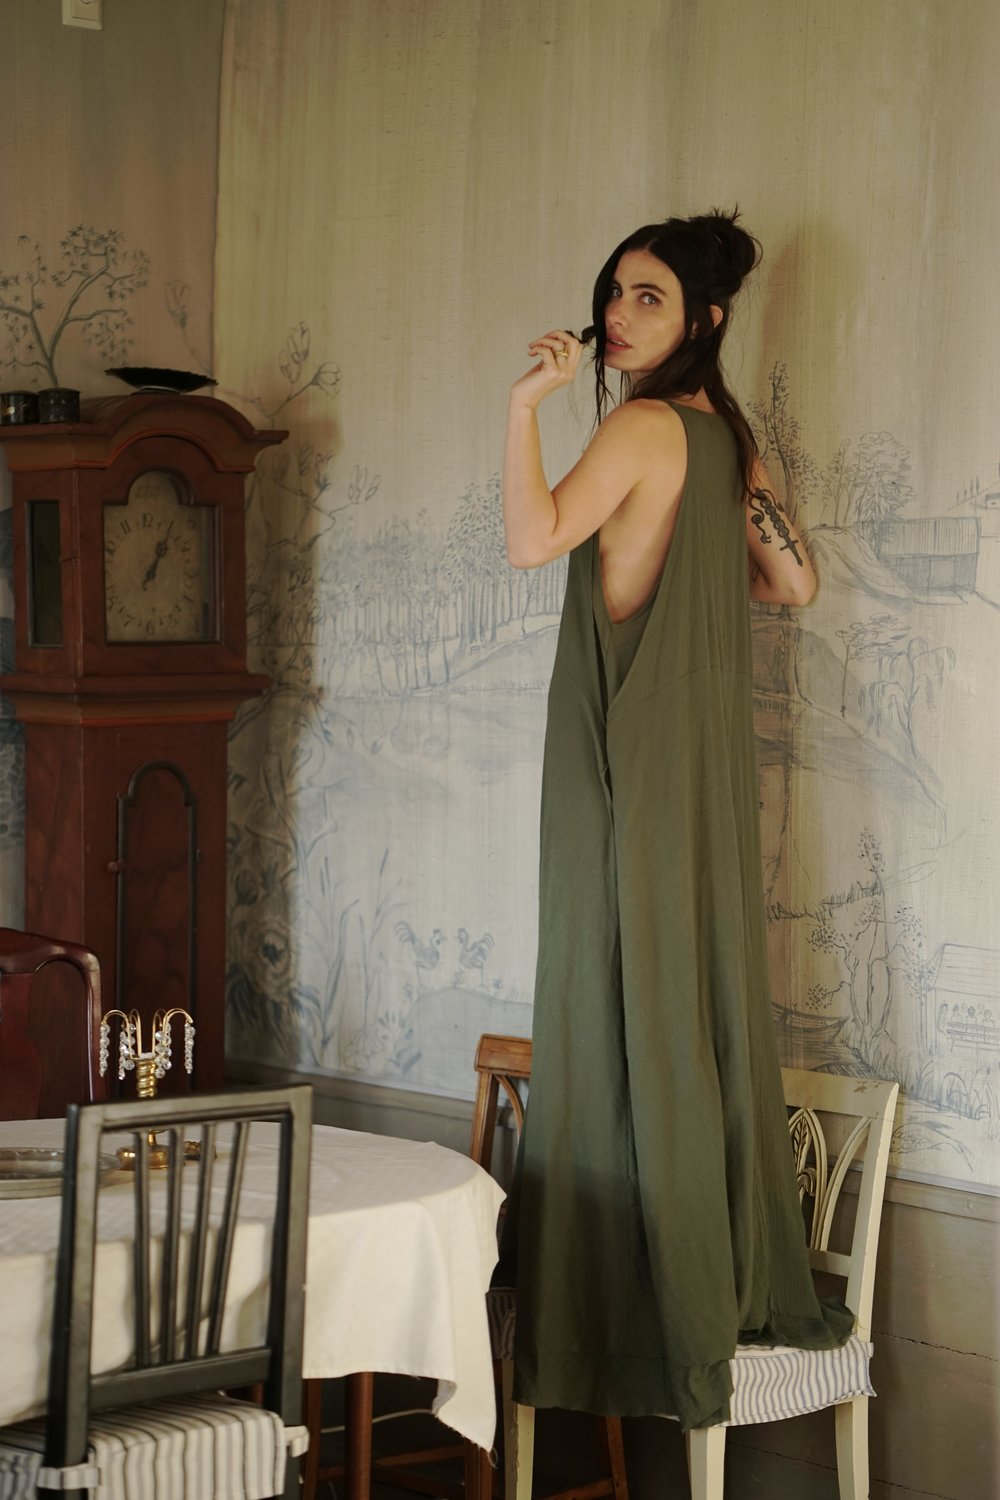 Photographer: Linnéa Wilhelmsson  Model: Sara Larocca Ramm  Wardrobe: Amarylis Dress in Olive by Sisters of the Black Moon